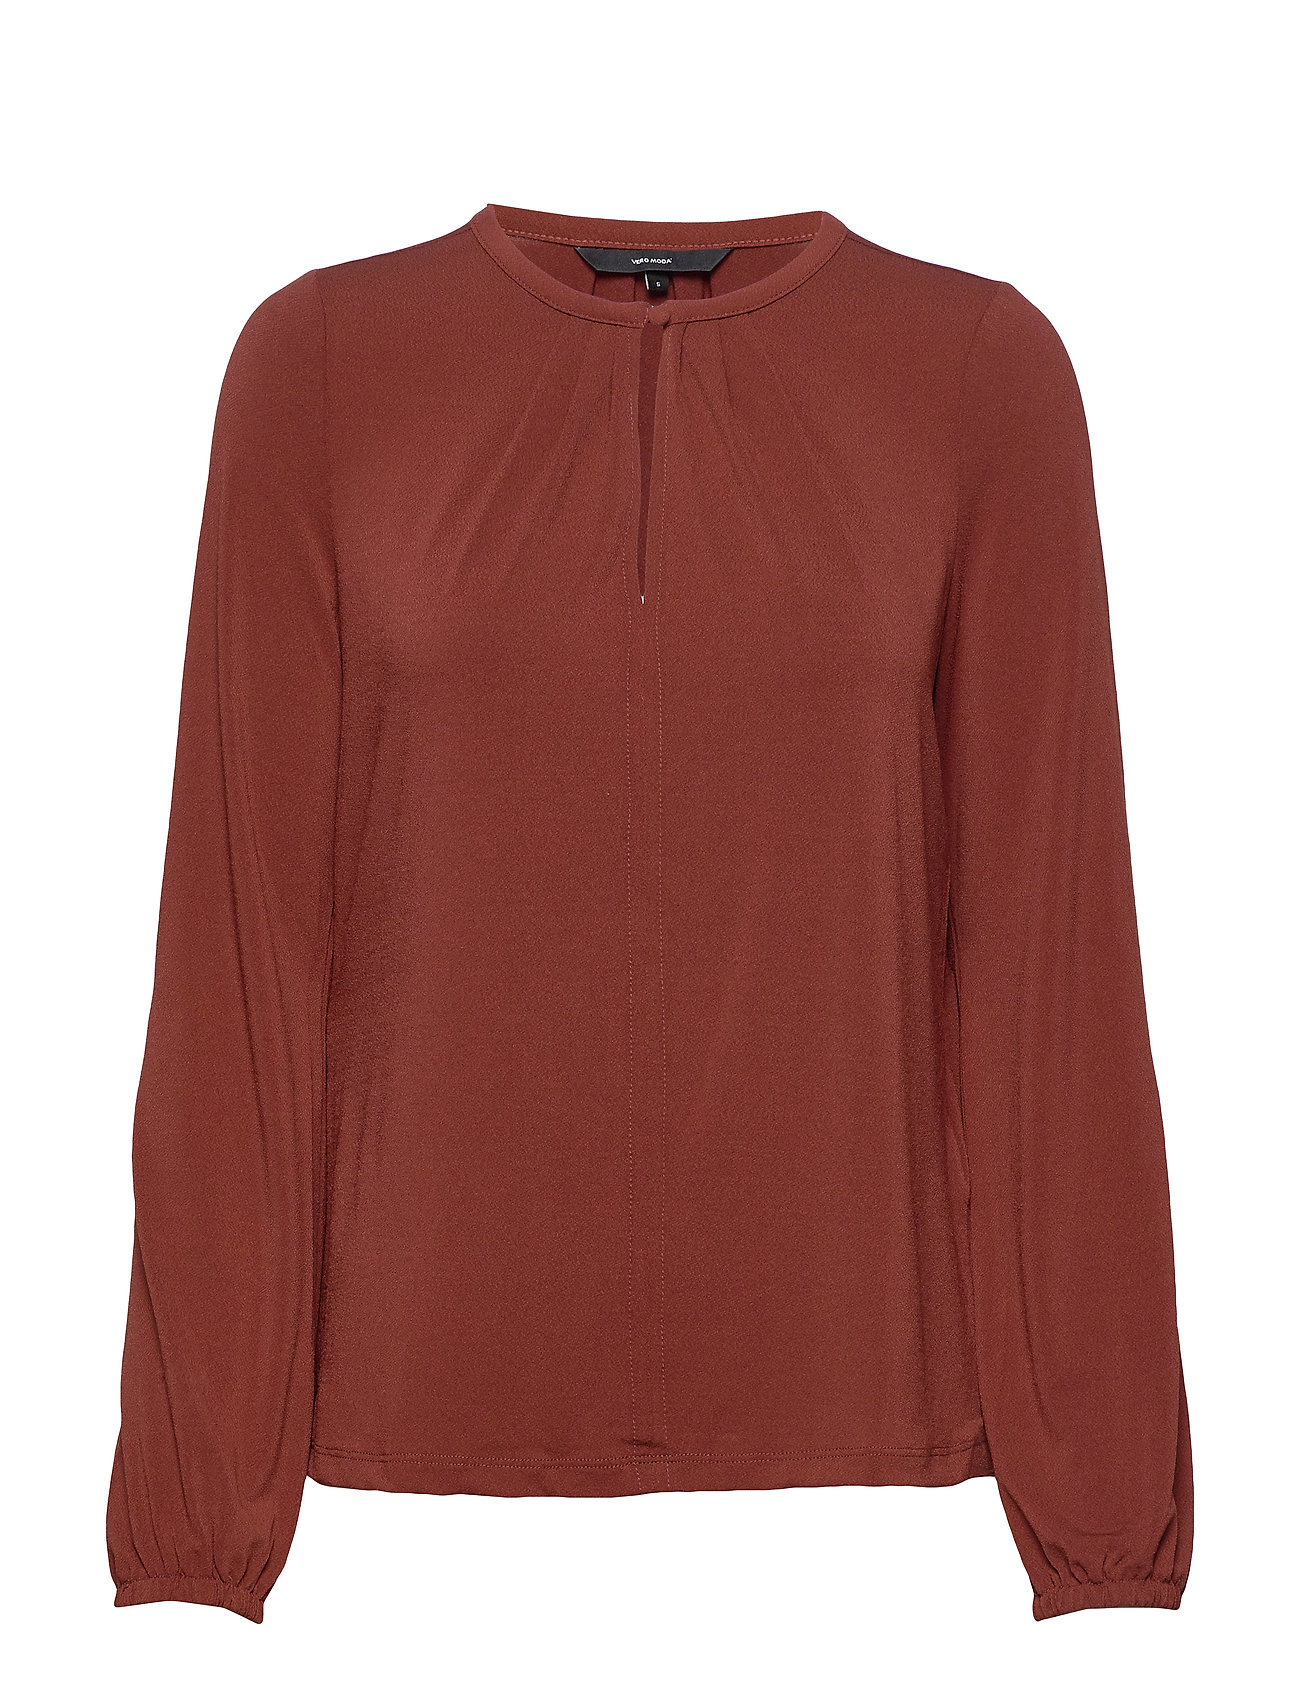 Vero Moda VMMILLA L/S BUTTON TOP VO - MADDER BROWN